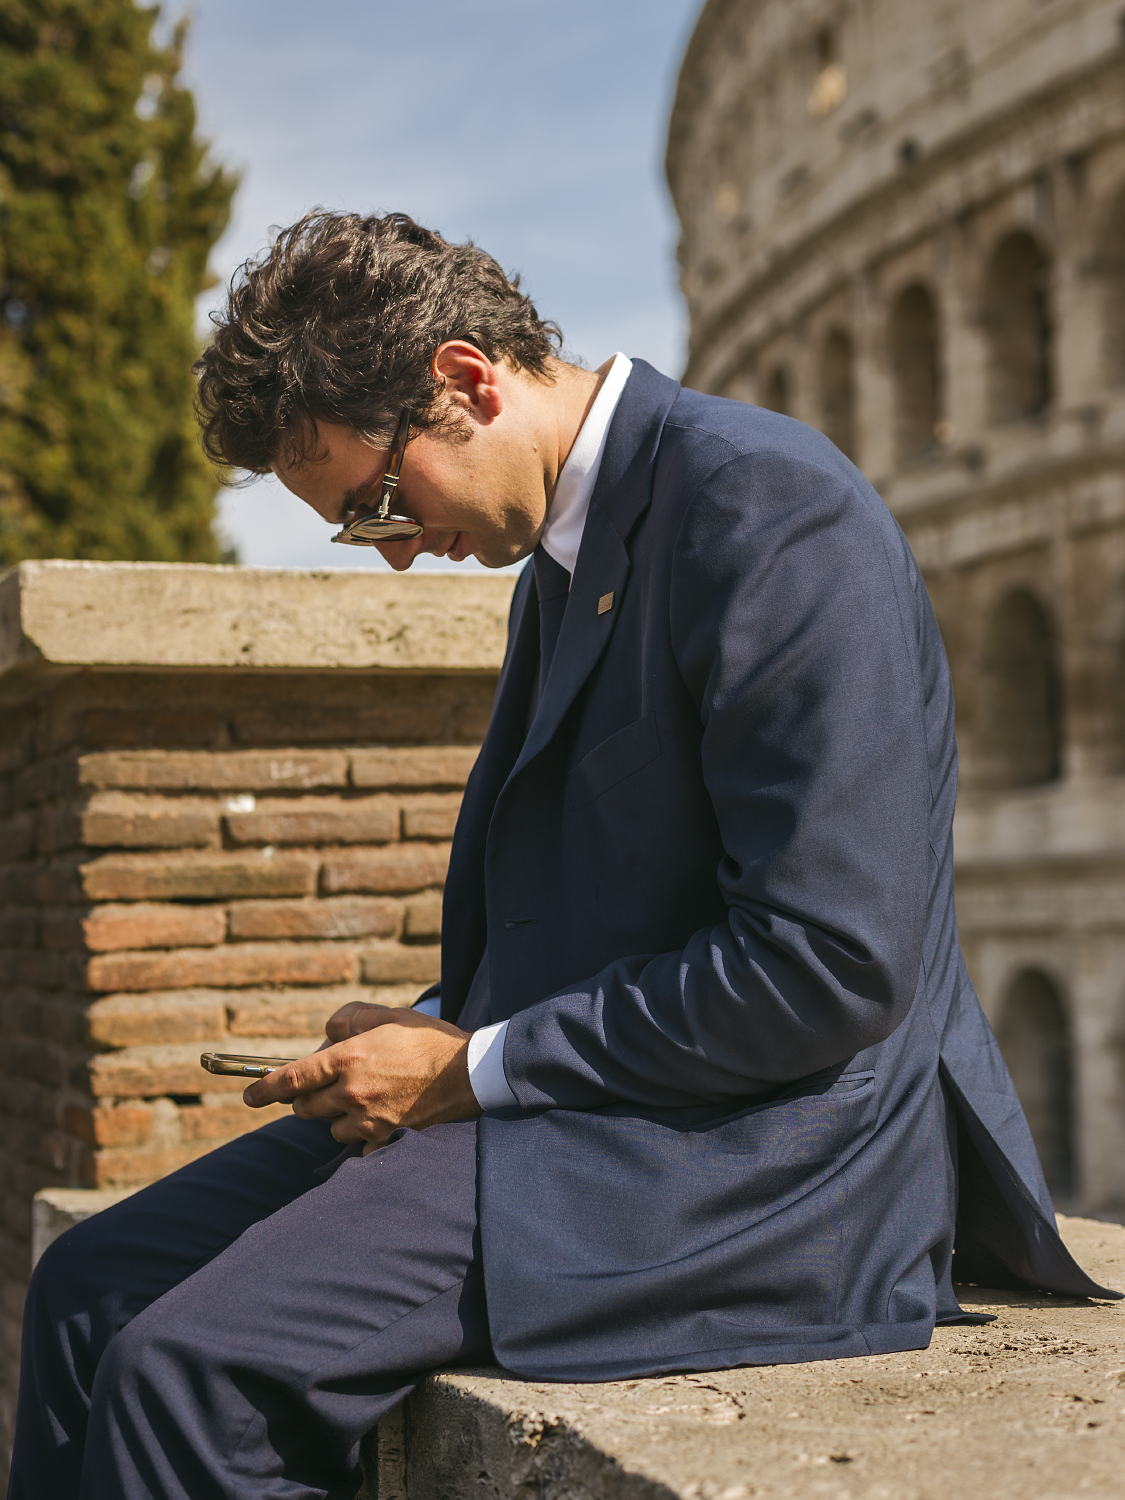 Businessman texting outside the Colosseum.